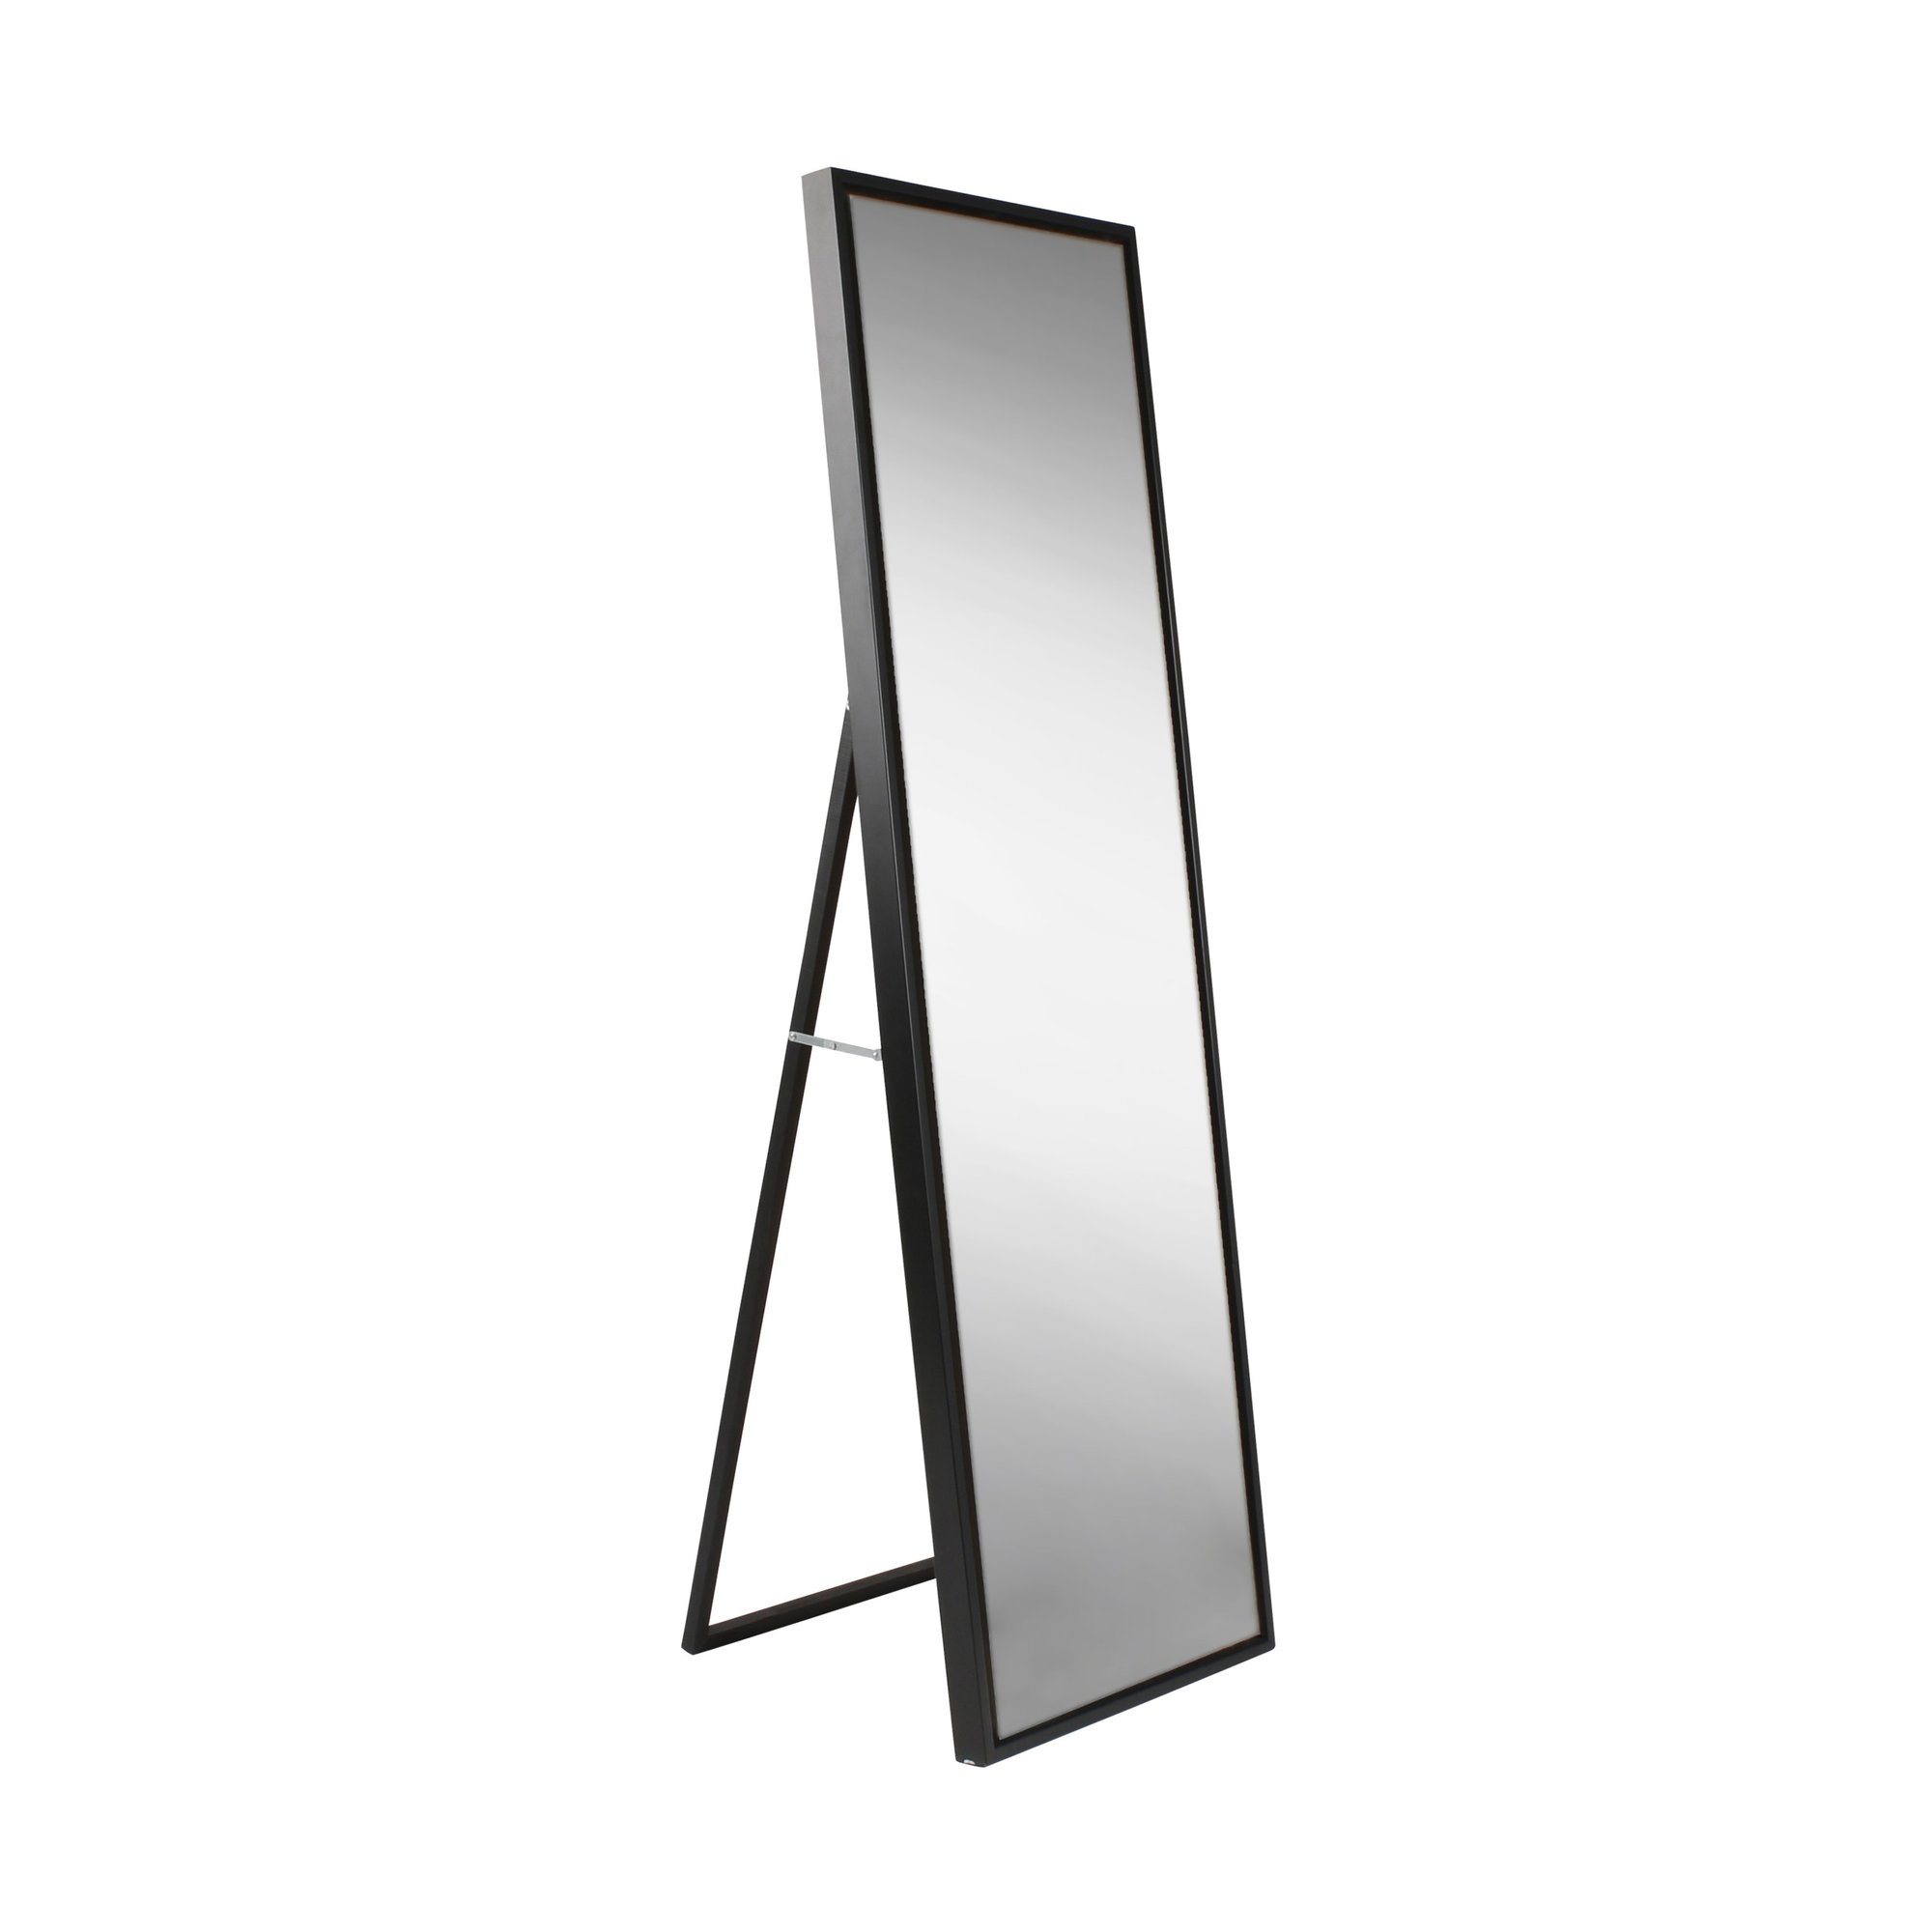 Evans Wood Framed Free Standing Mirror Reviews Allmodern With Free Standing Black Mirror (Image 7 of 15)